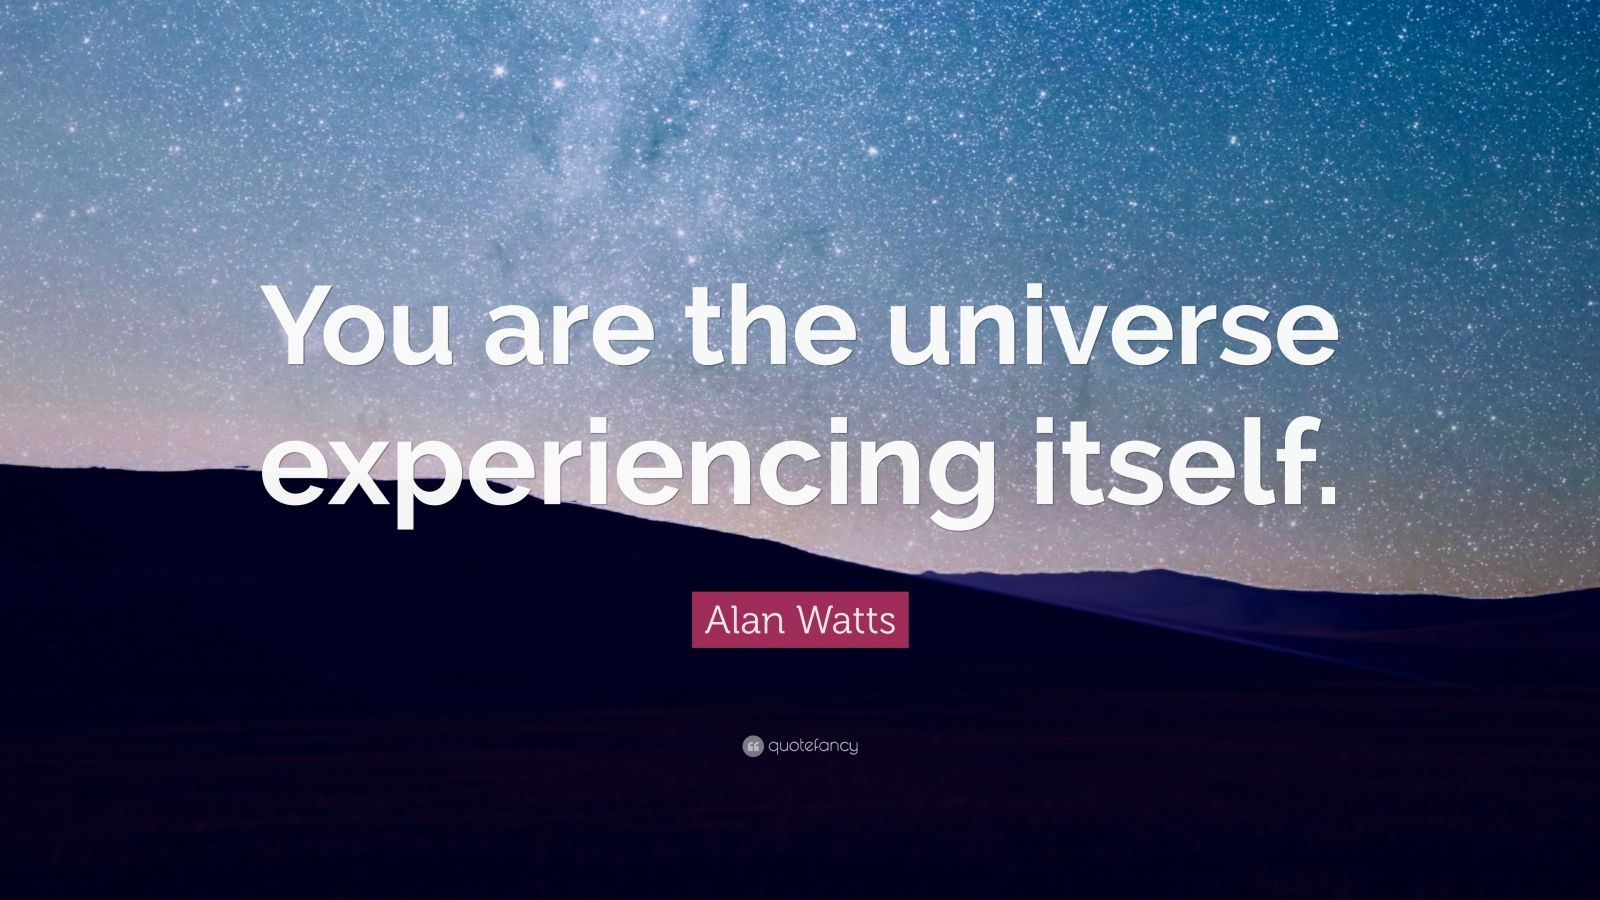 Relationship Quotes Wallpapers Alan Watts Quote You Are The Universe Experiencing